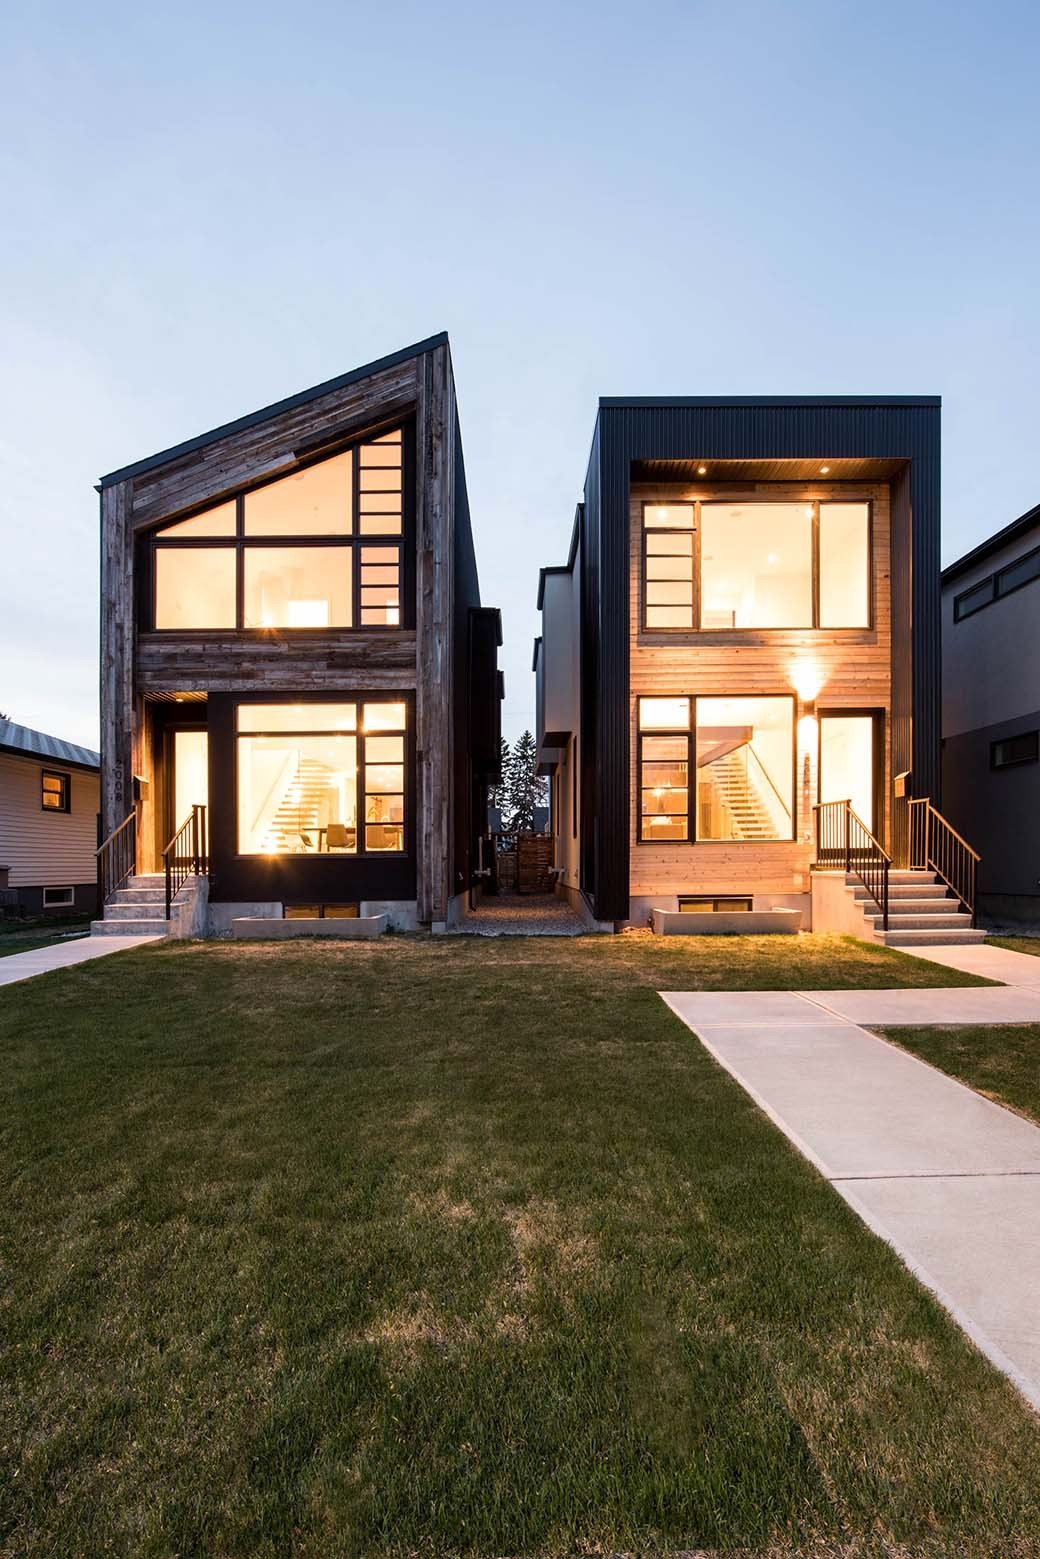 B85 b90 building bloc design archdaily for Architectural design homes pictures